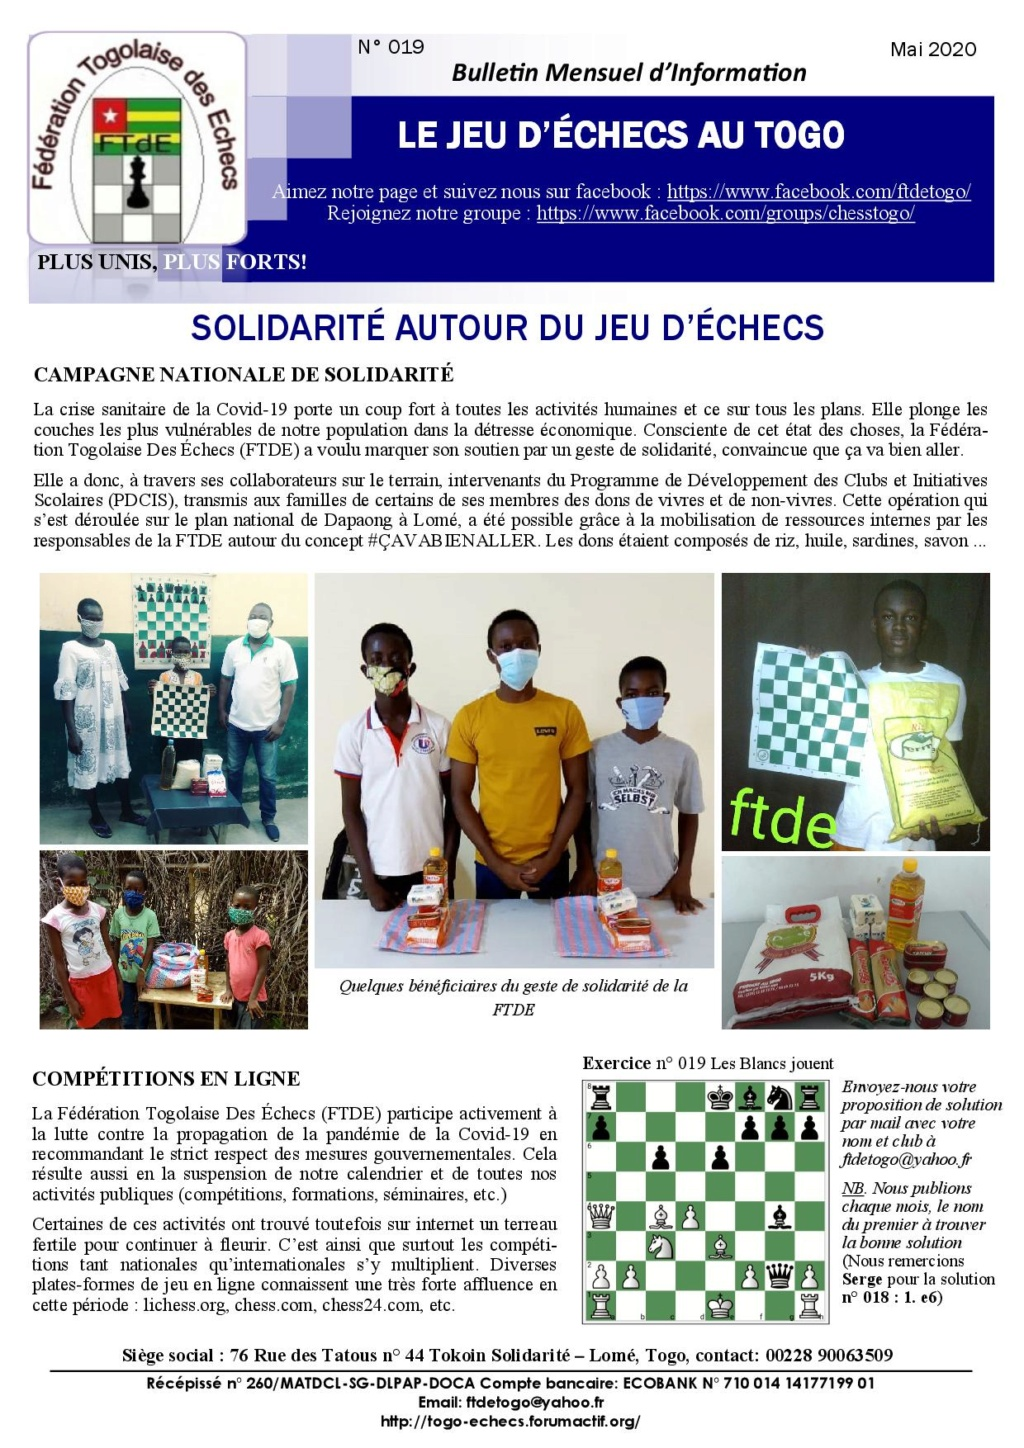 Le Bulletin Mensuel d'Information n° 019 mai 2020 Bmi_ft27